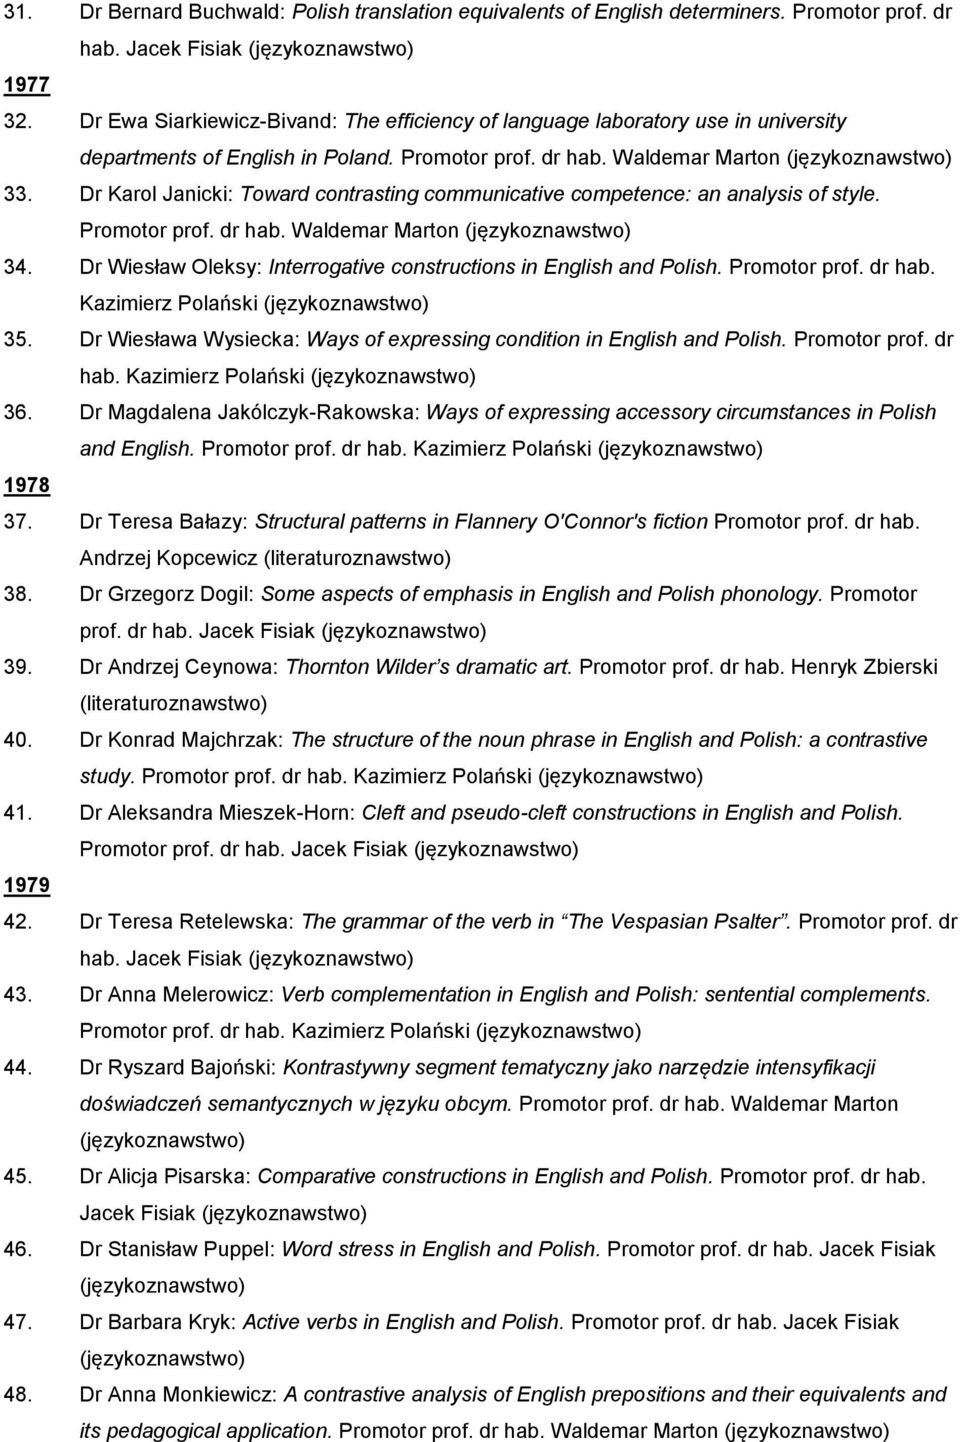 Dr Karol Janicki: Toward contrasting communicative competence: an analysis of style. Promotor prof. dr hab. Waldemar Marton 34. Dr Wiesław Oleksy: Interrogative constructions in English and Polish.